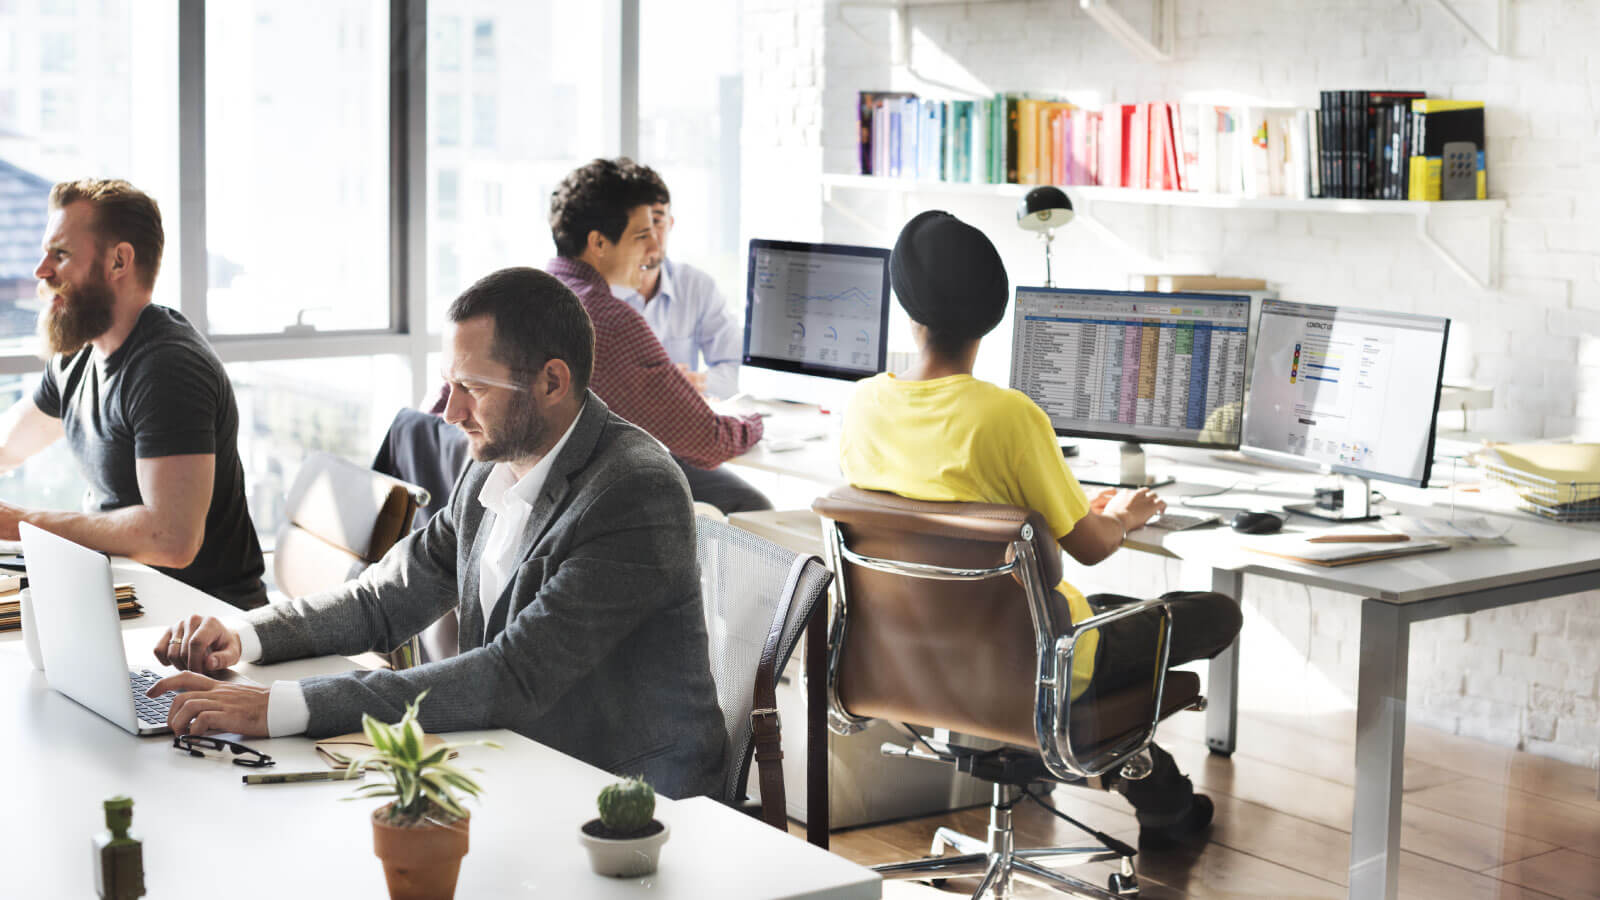 10 tips to choosing your workplace battles wisely topresume